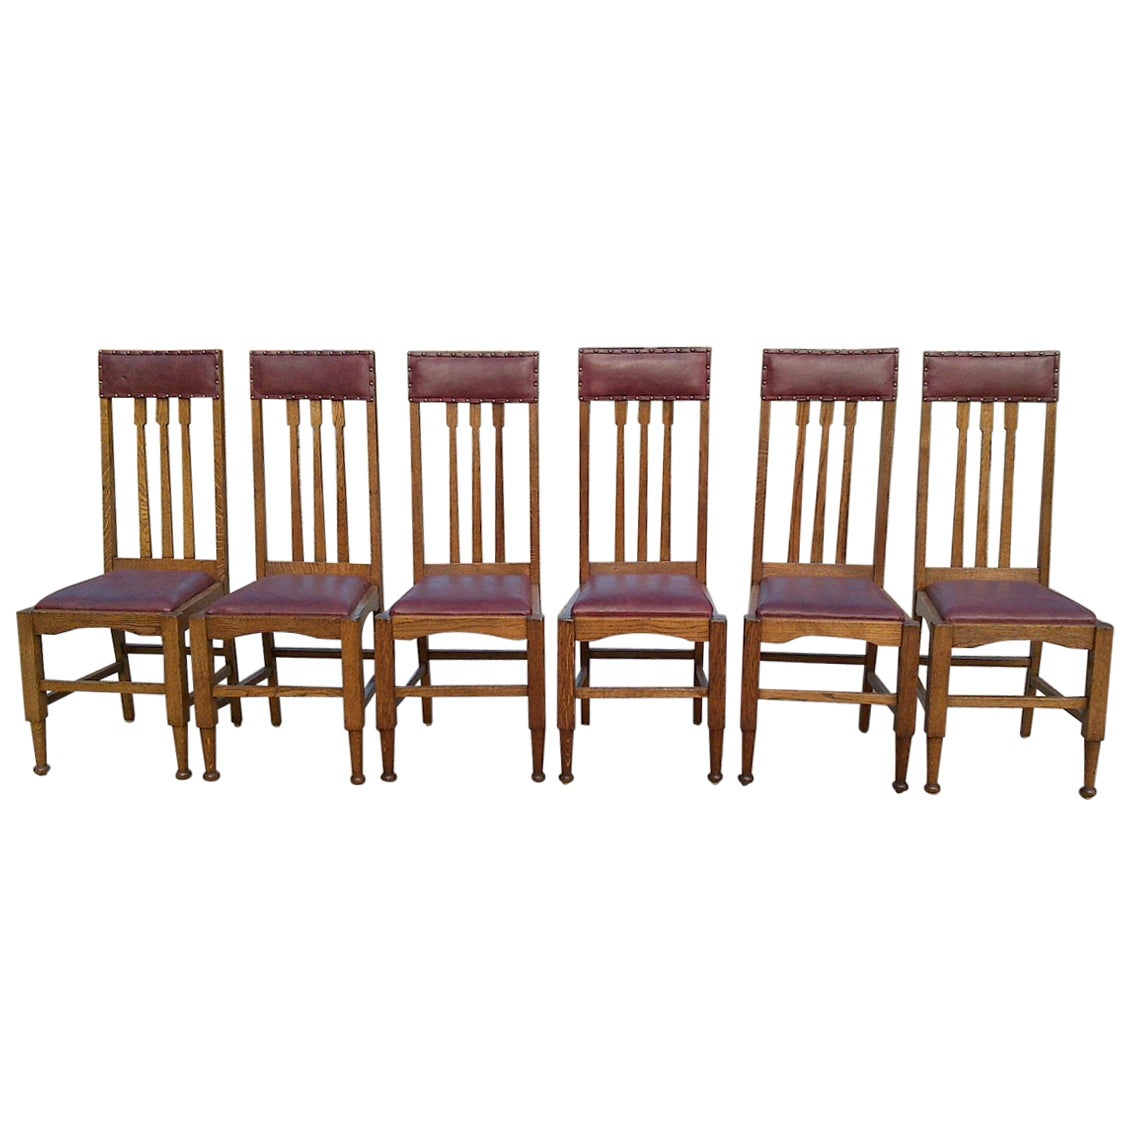 Eight Arts & Crafts Glasgow Style High Back Oak Dining Chairs with Leather Seats